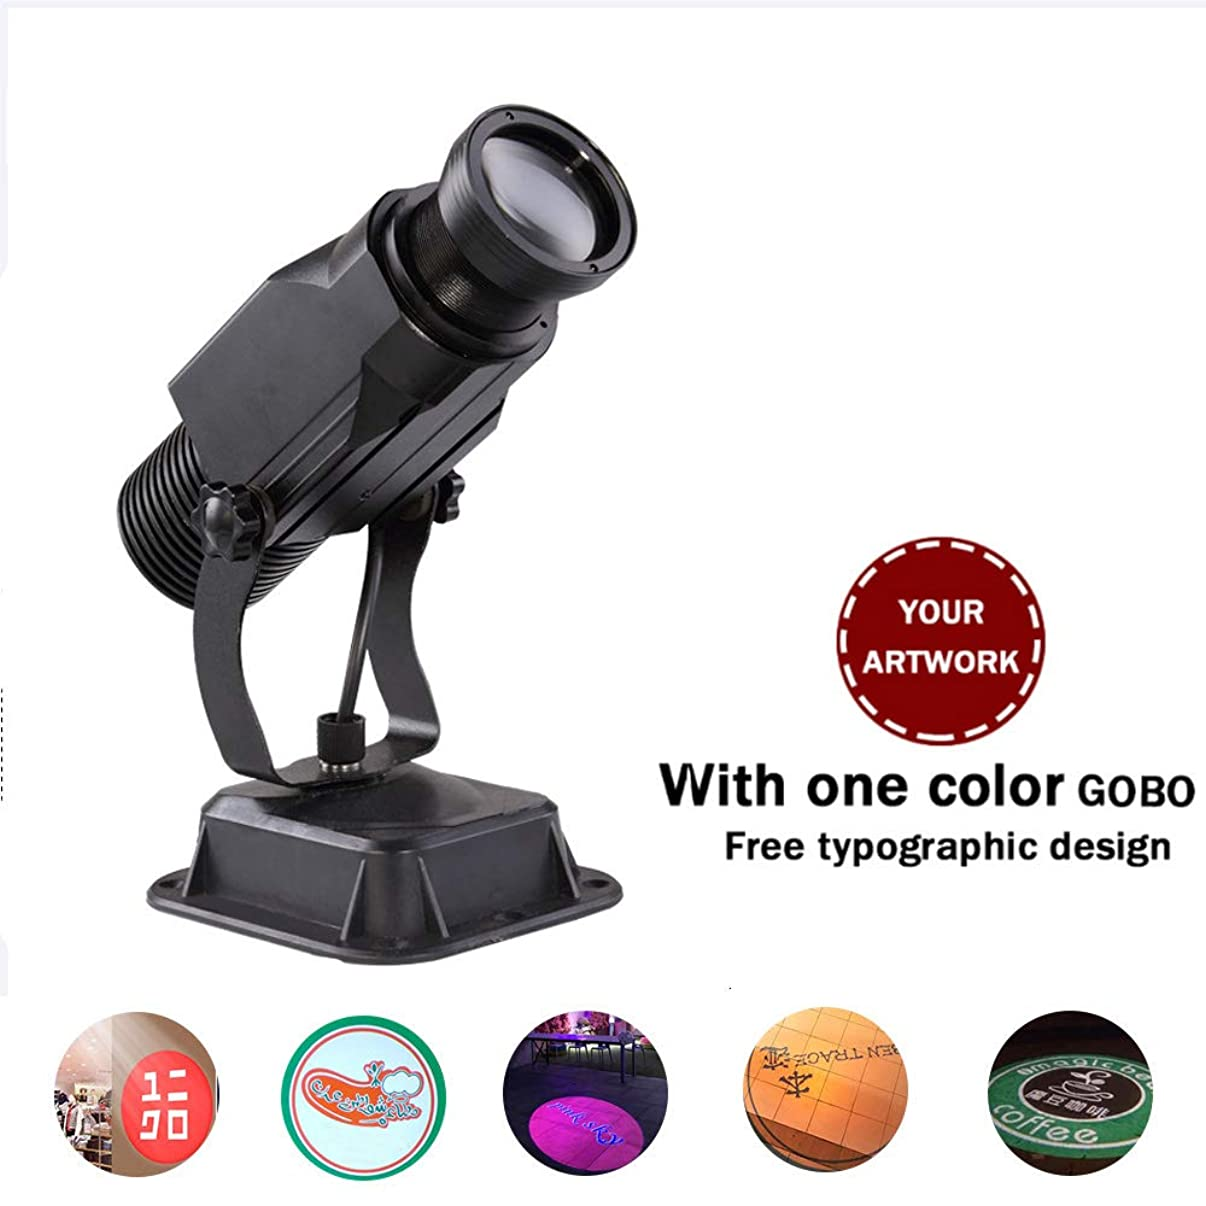 AMAZOIN Led Custom Image GOBO Logo Projector Light with Manual Zoom&Focus Customized Gobos for Party Lighting, Landscape Light, Dj Wedding and Advertisement (15W, Outdoor Waterproof)